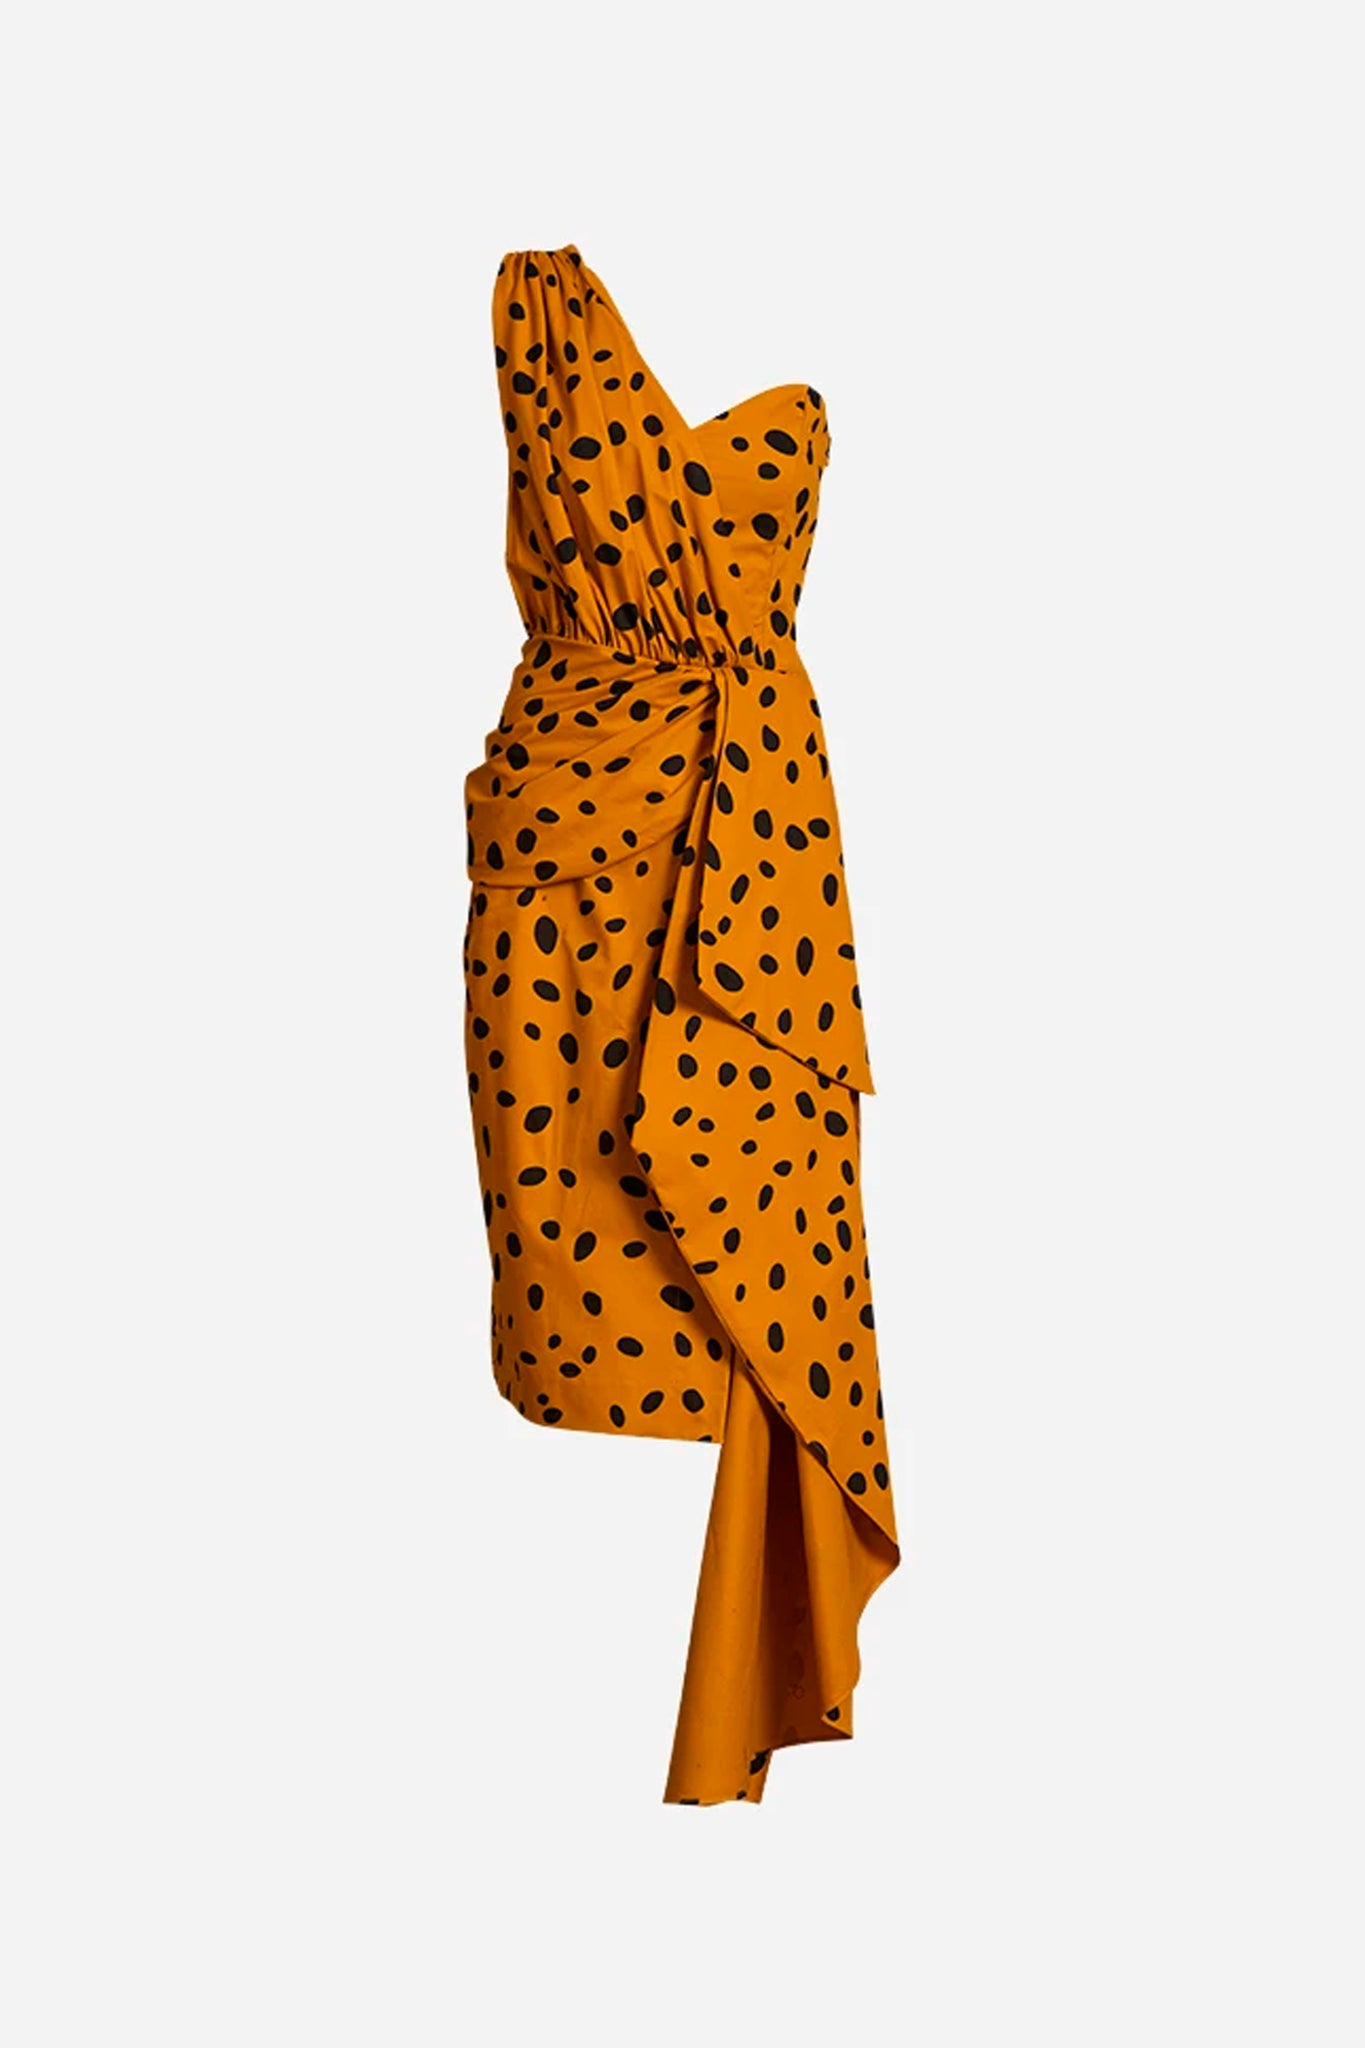 Cheetah Minx Drape Dress